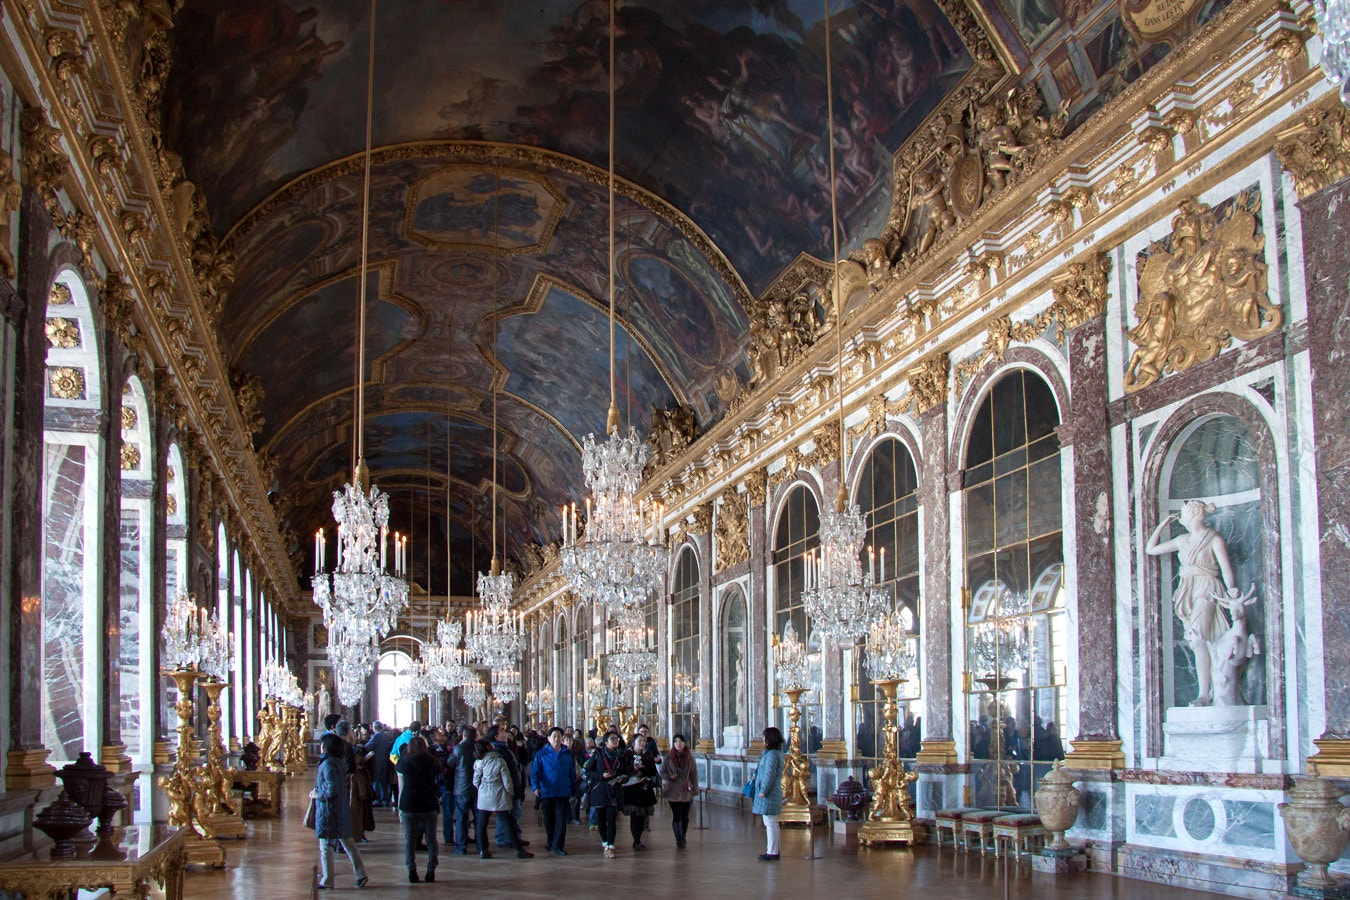 Photograph Hall of Mirrors, Versailles by martin gatti on 500px